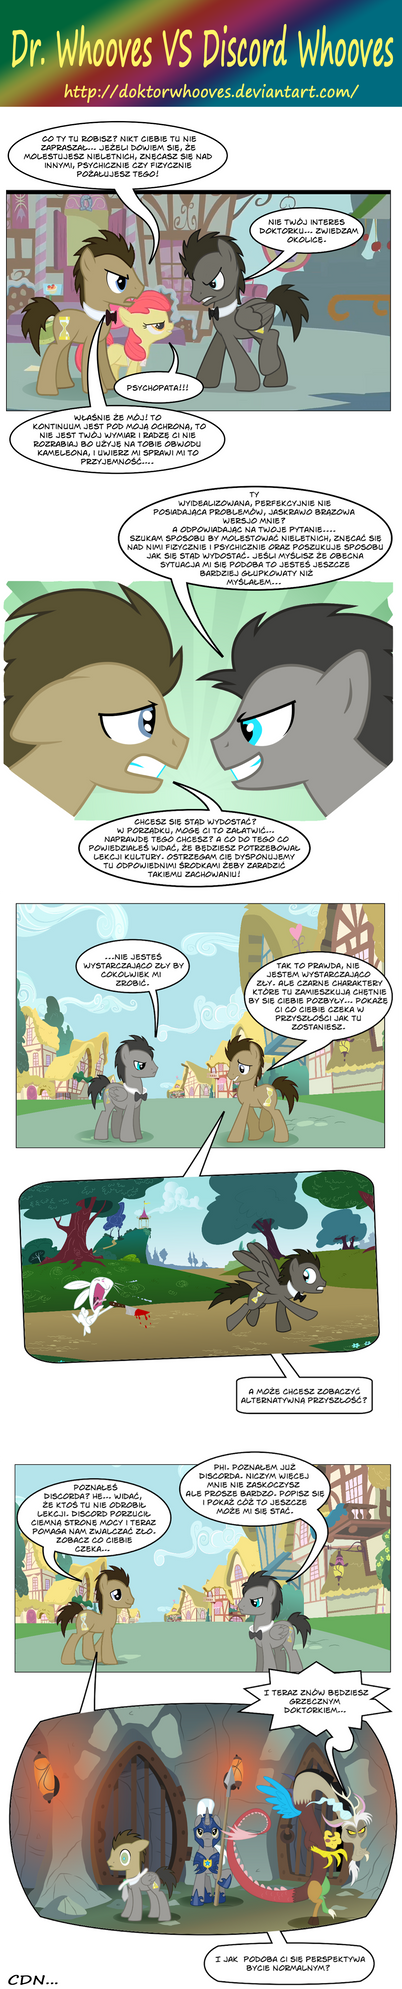 Dr. Whooves VS Discord Whooves by doktorwhooves on deviantART